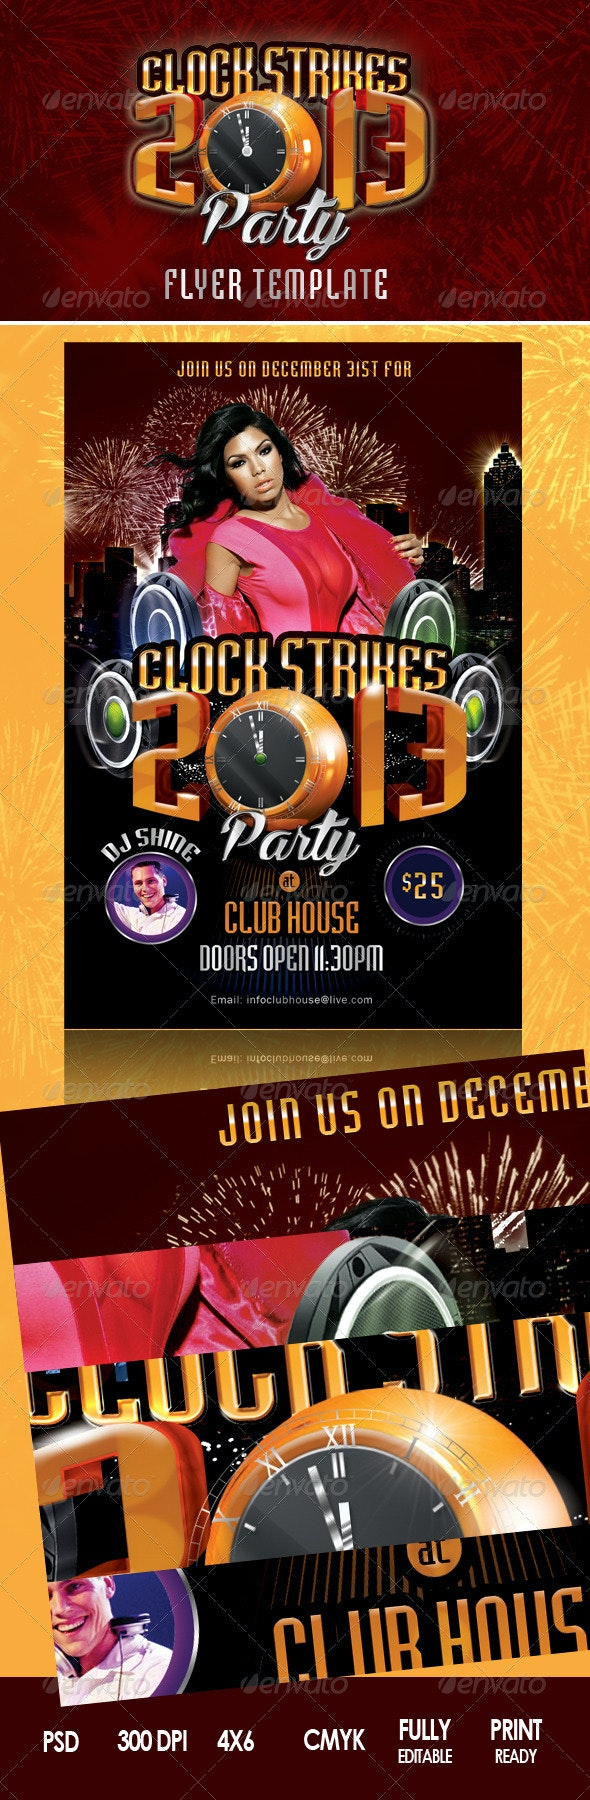 Clock Strikes 2013 Party Flyer - Clubs & Parties Events